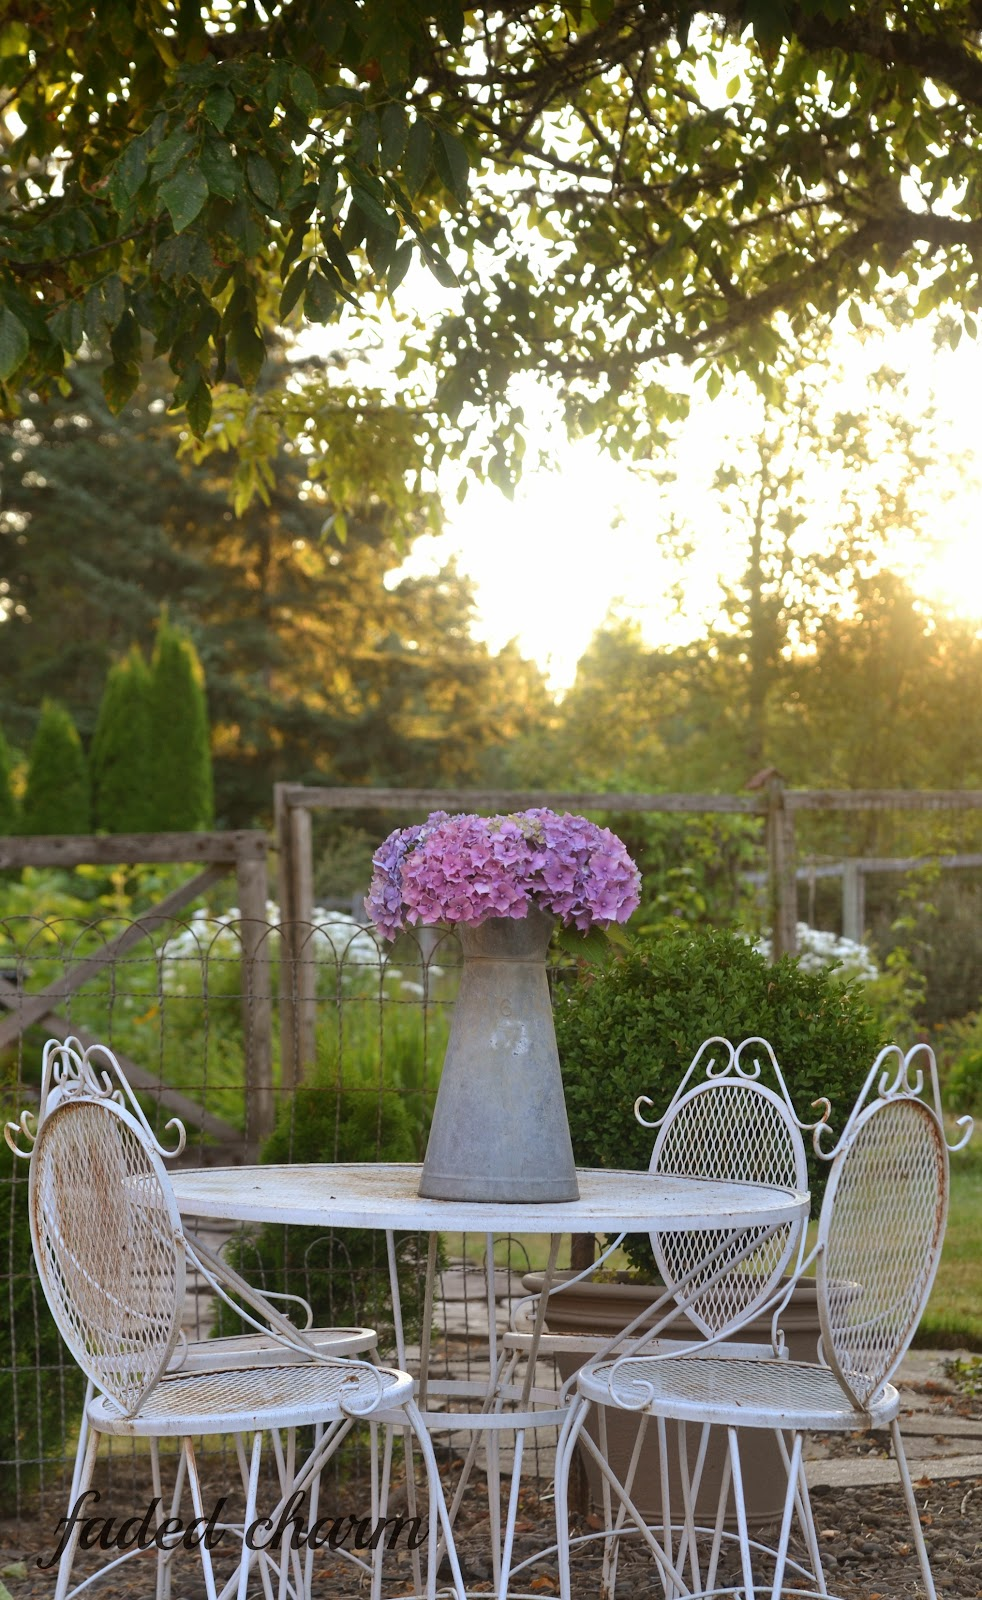 Cottage Garden with Hydrangeas